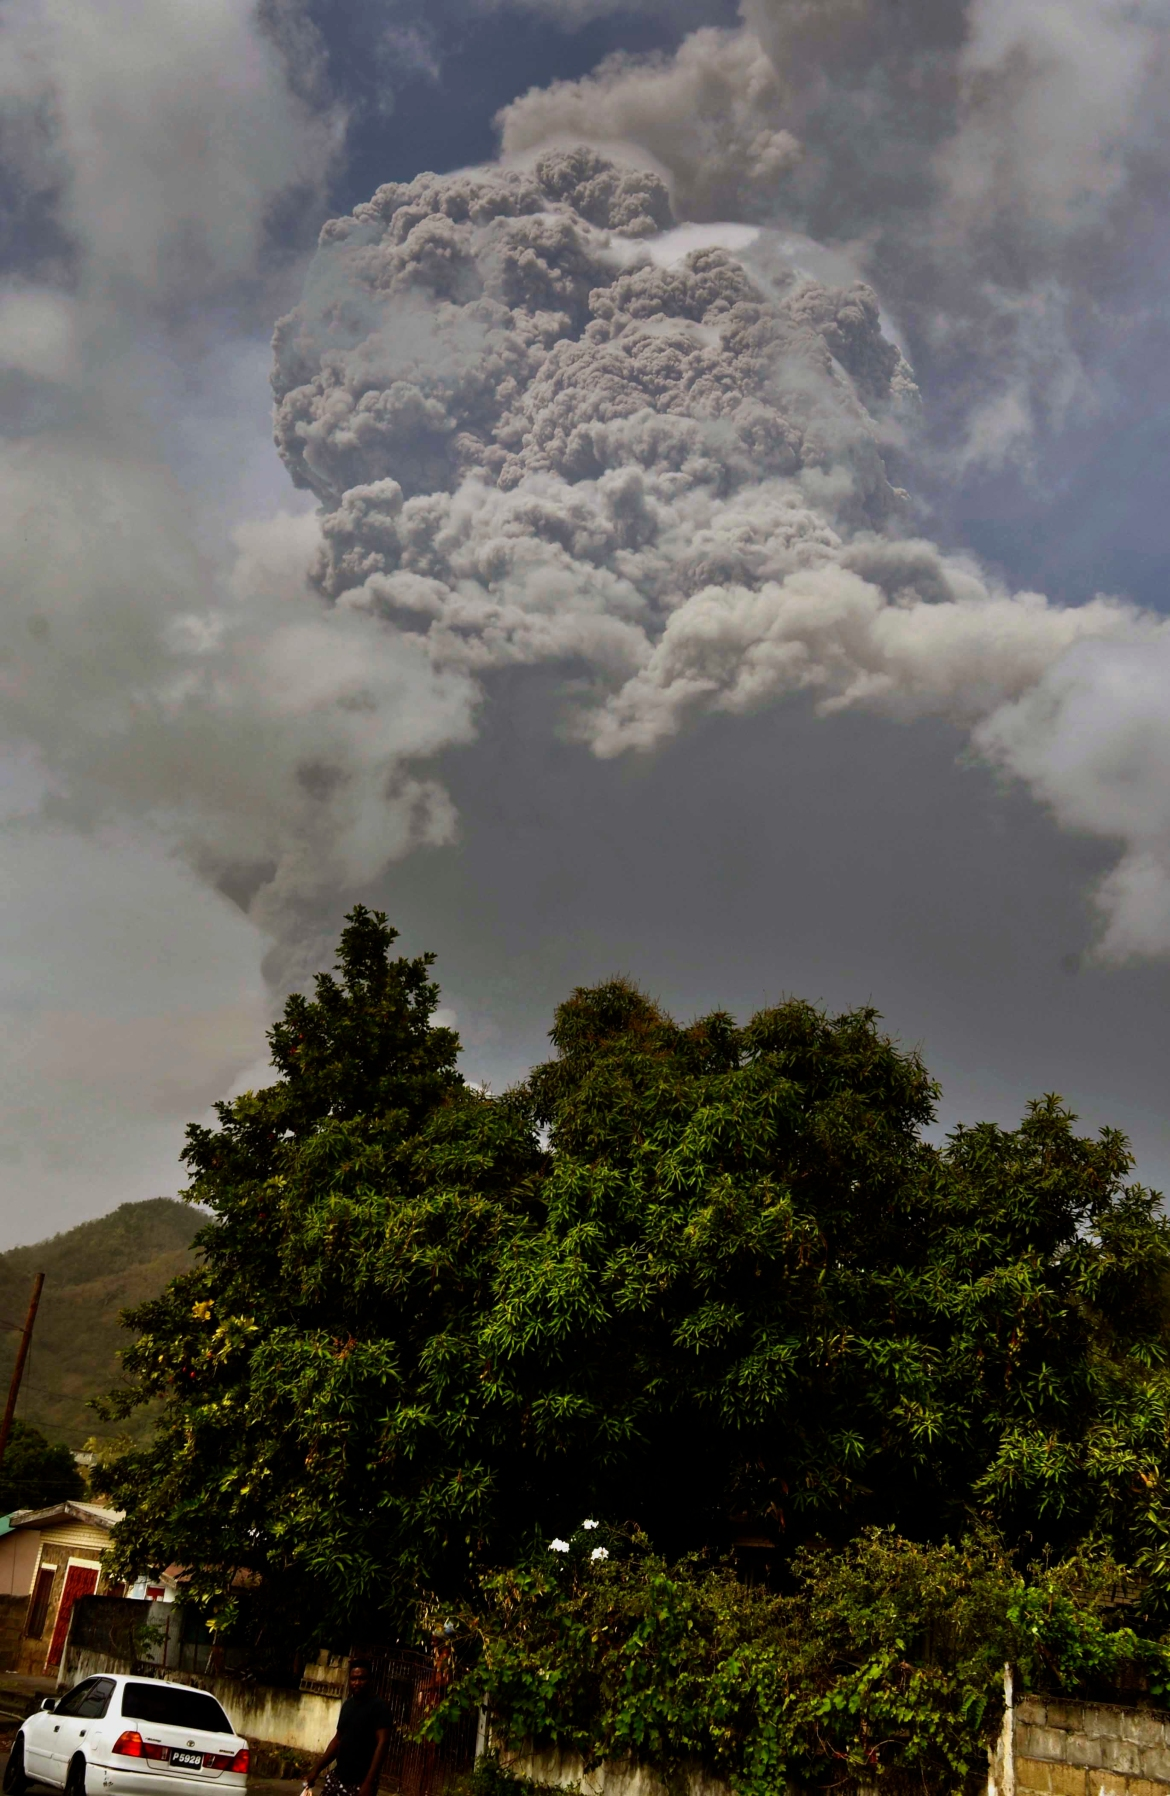 Plumes of ash rise from the volcano which erupted for the first time in 40 years on the Caribbean island of Saint Vincent on Friday, prompting thousands of people to evacuate. [Orvil Samuel/AP Photo]